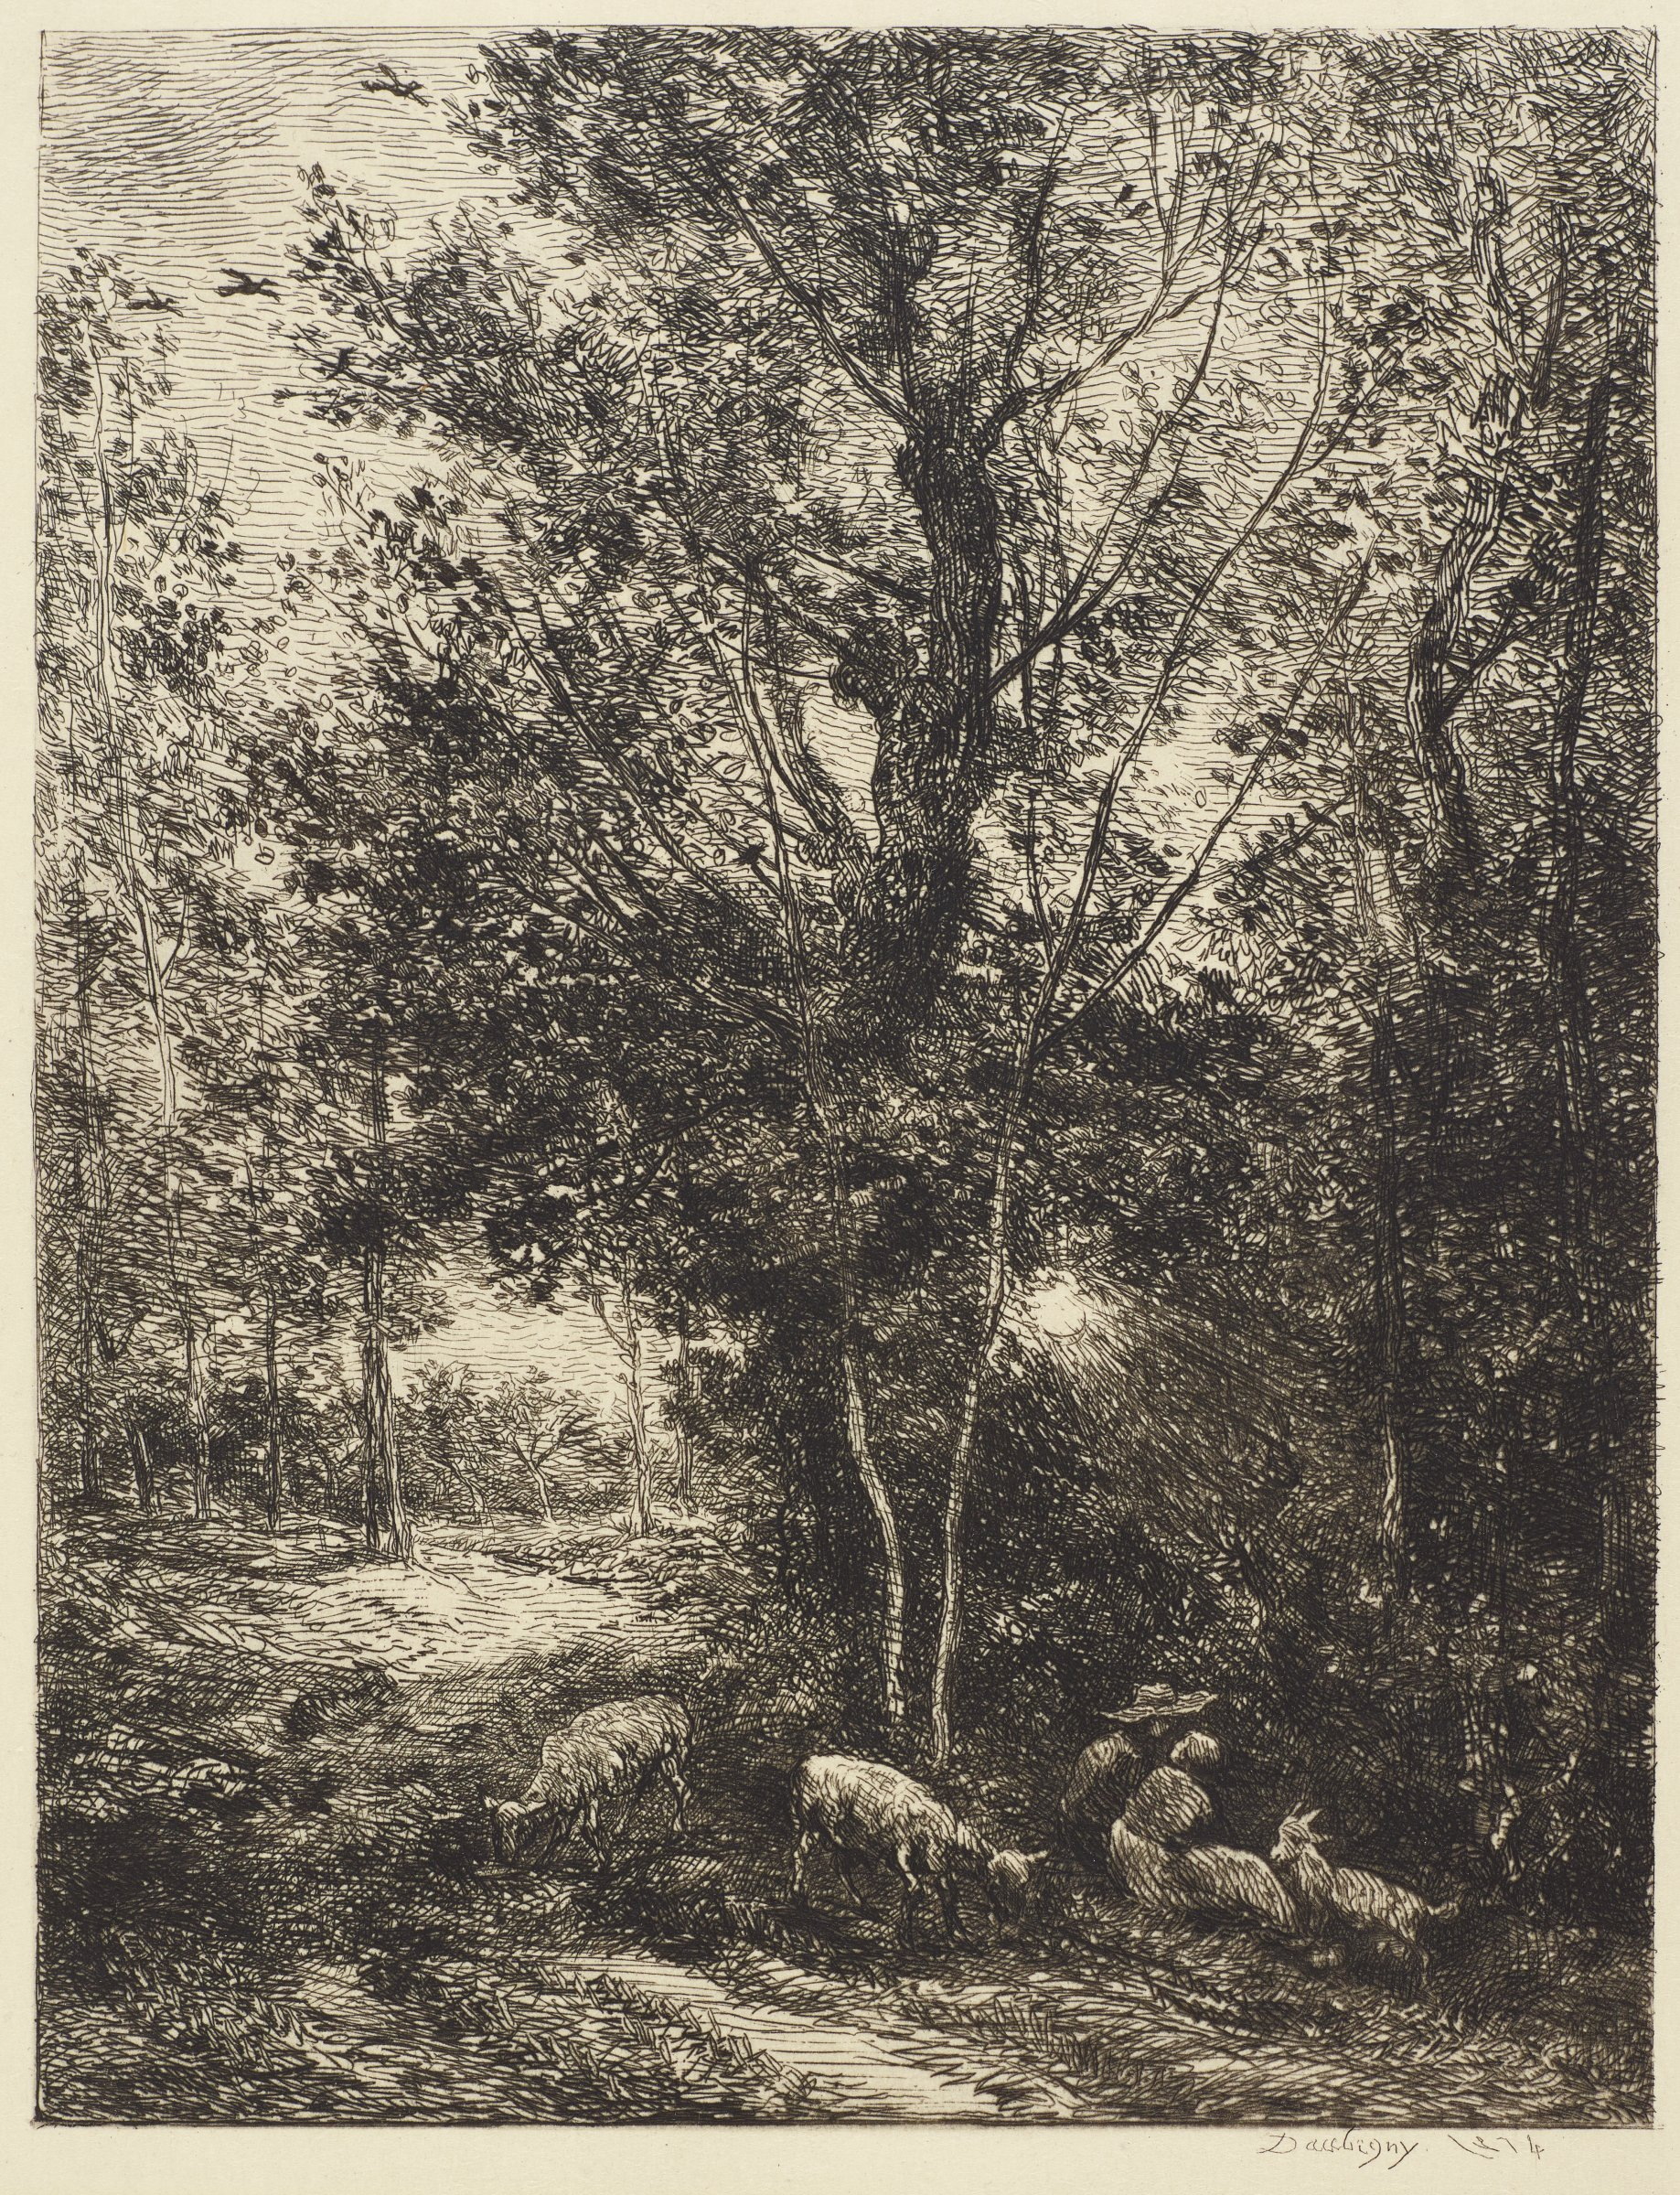 A shepherd and shepherdess sit in the right foreground with several sheep surrounded by trees.